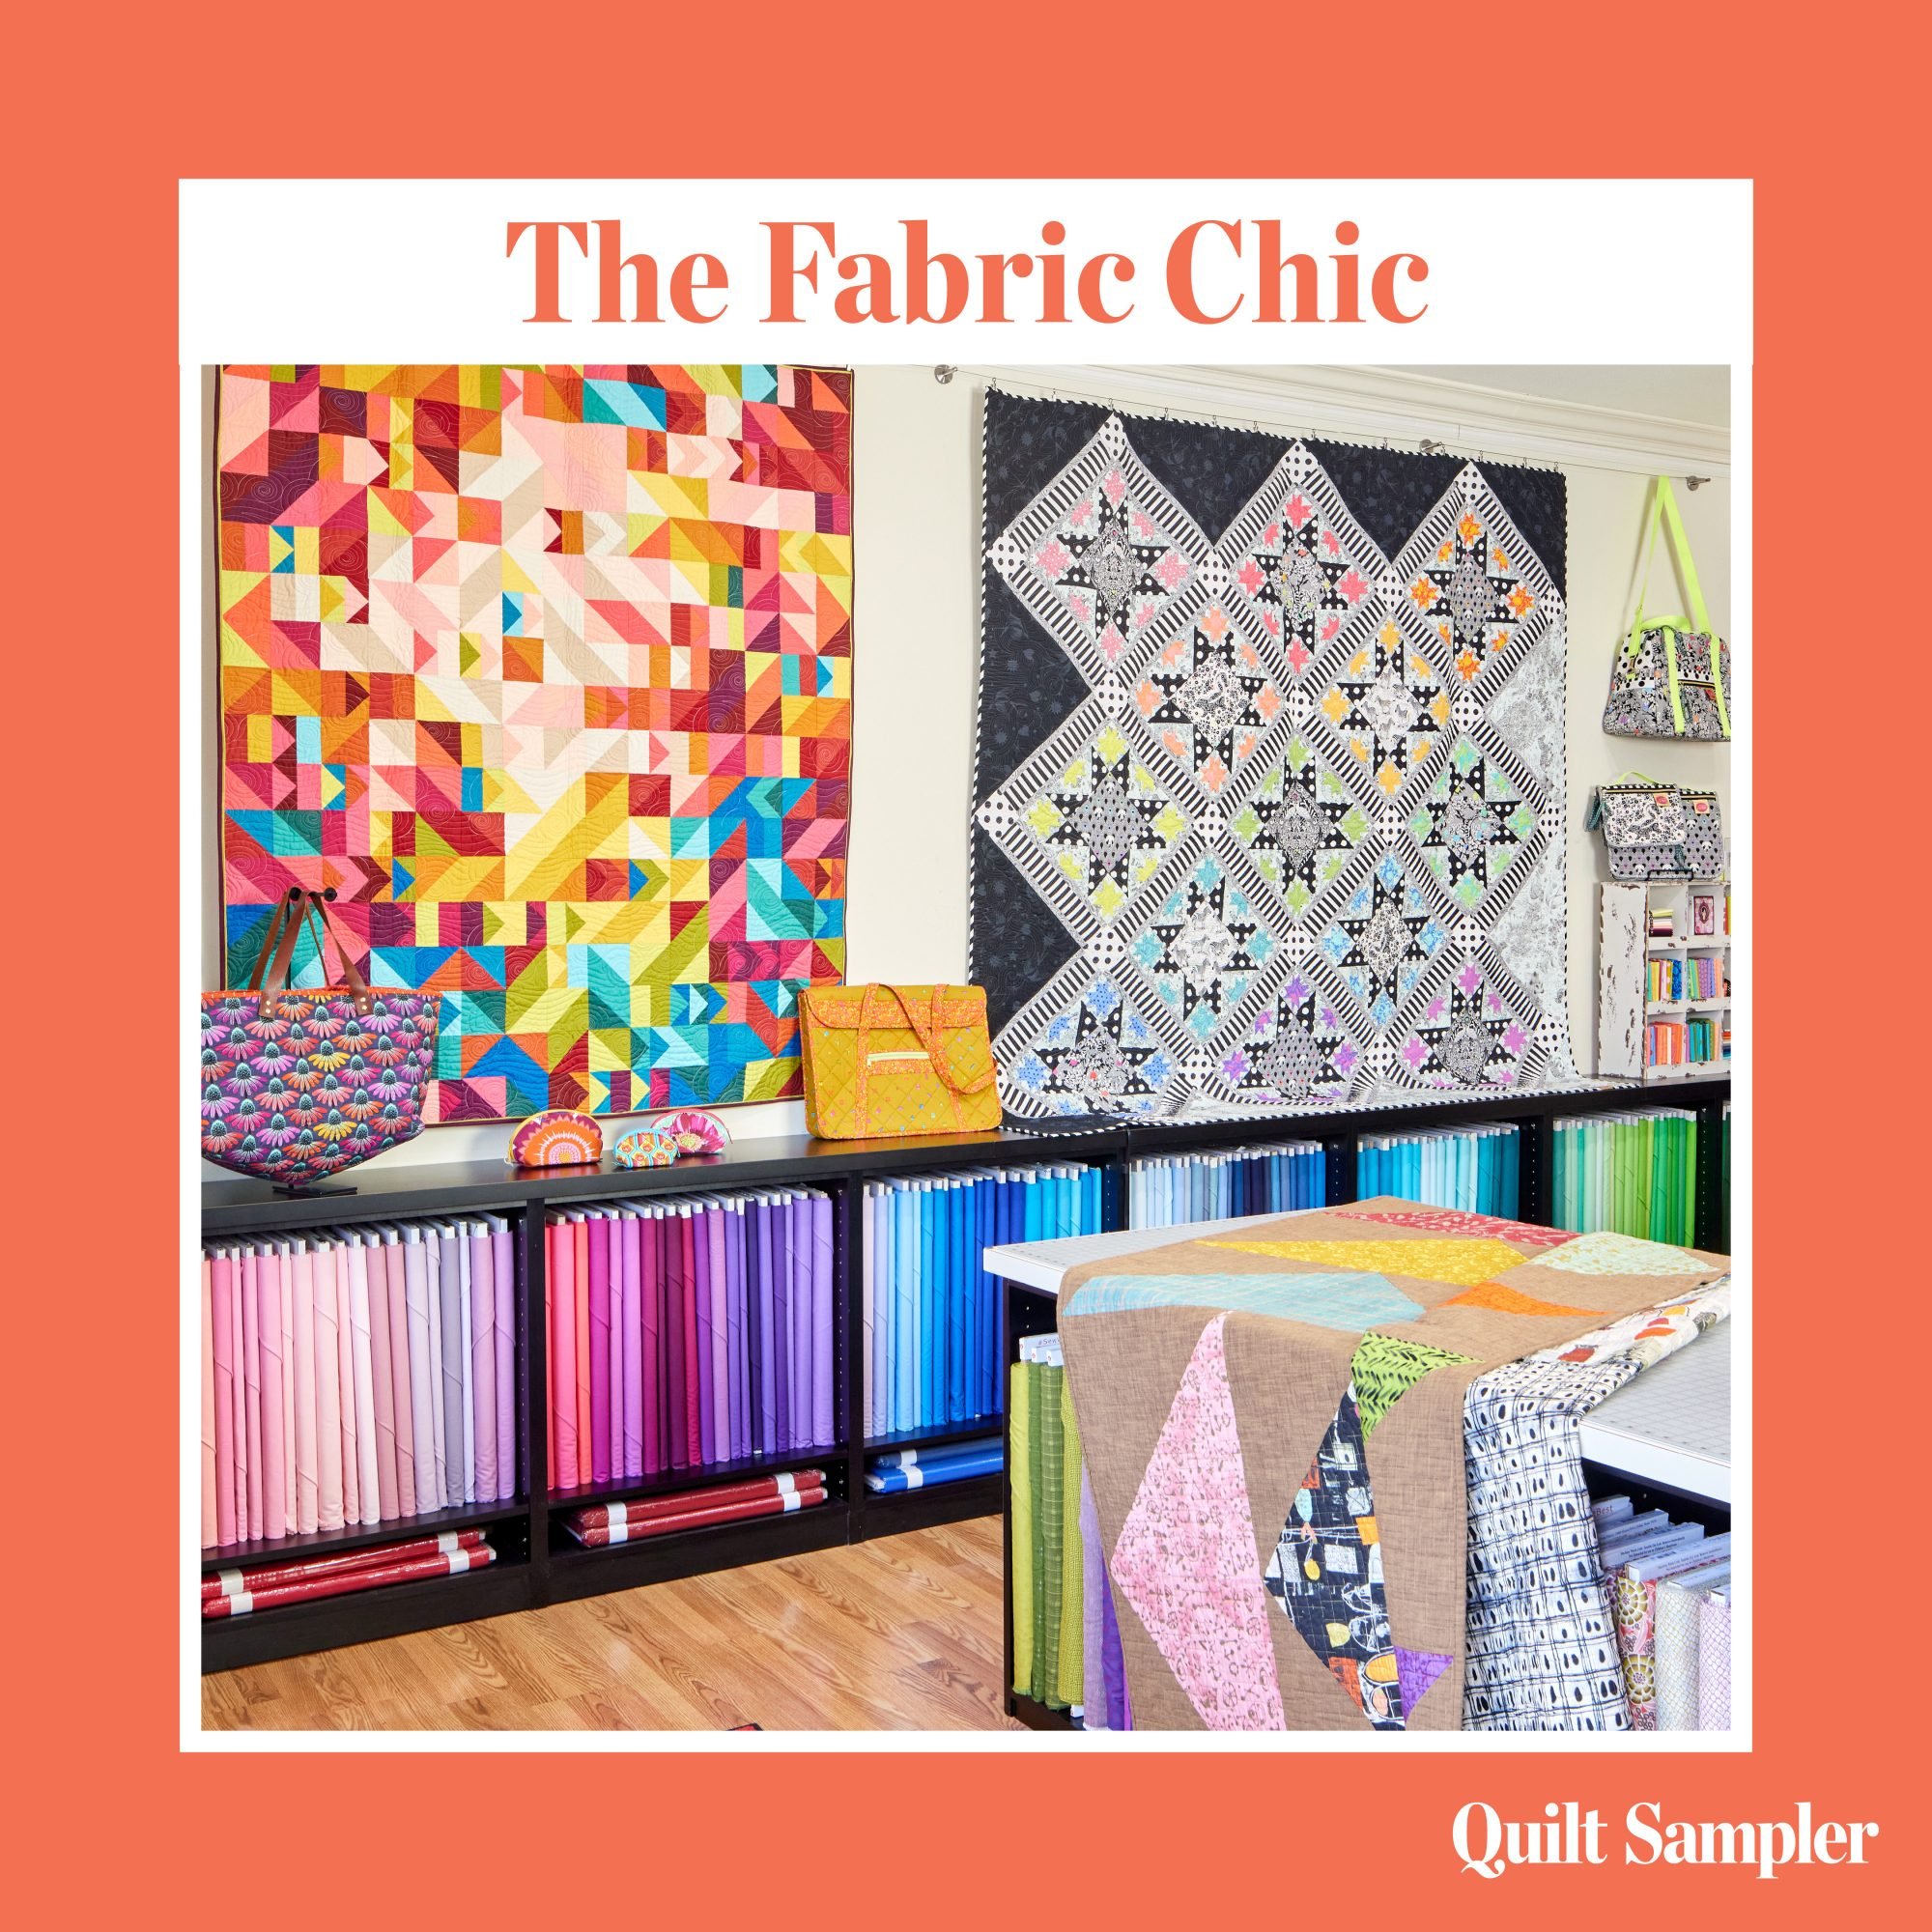 The Fabric Chic